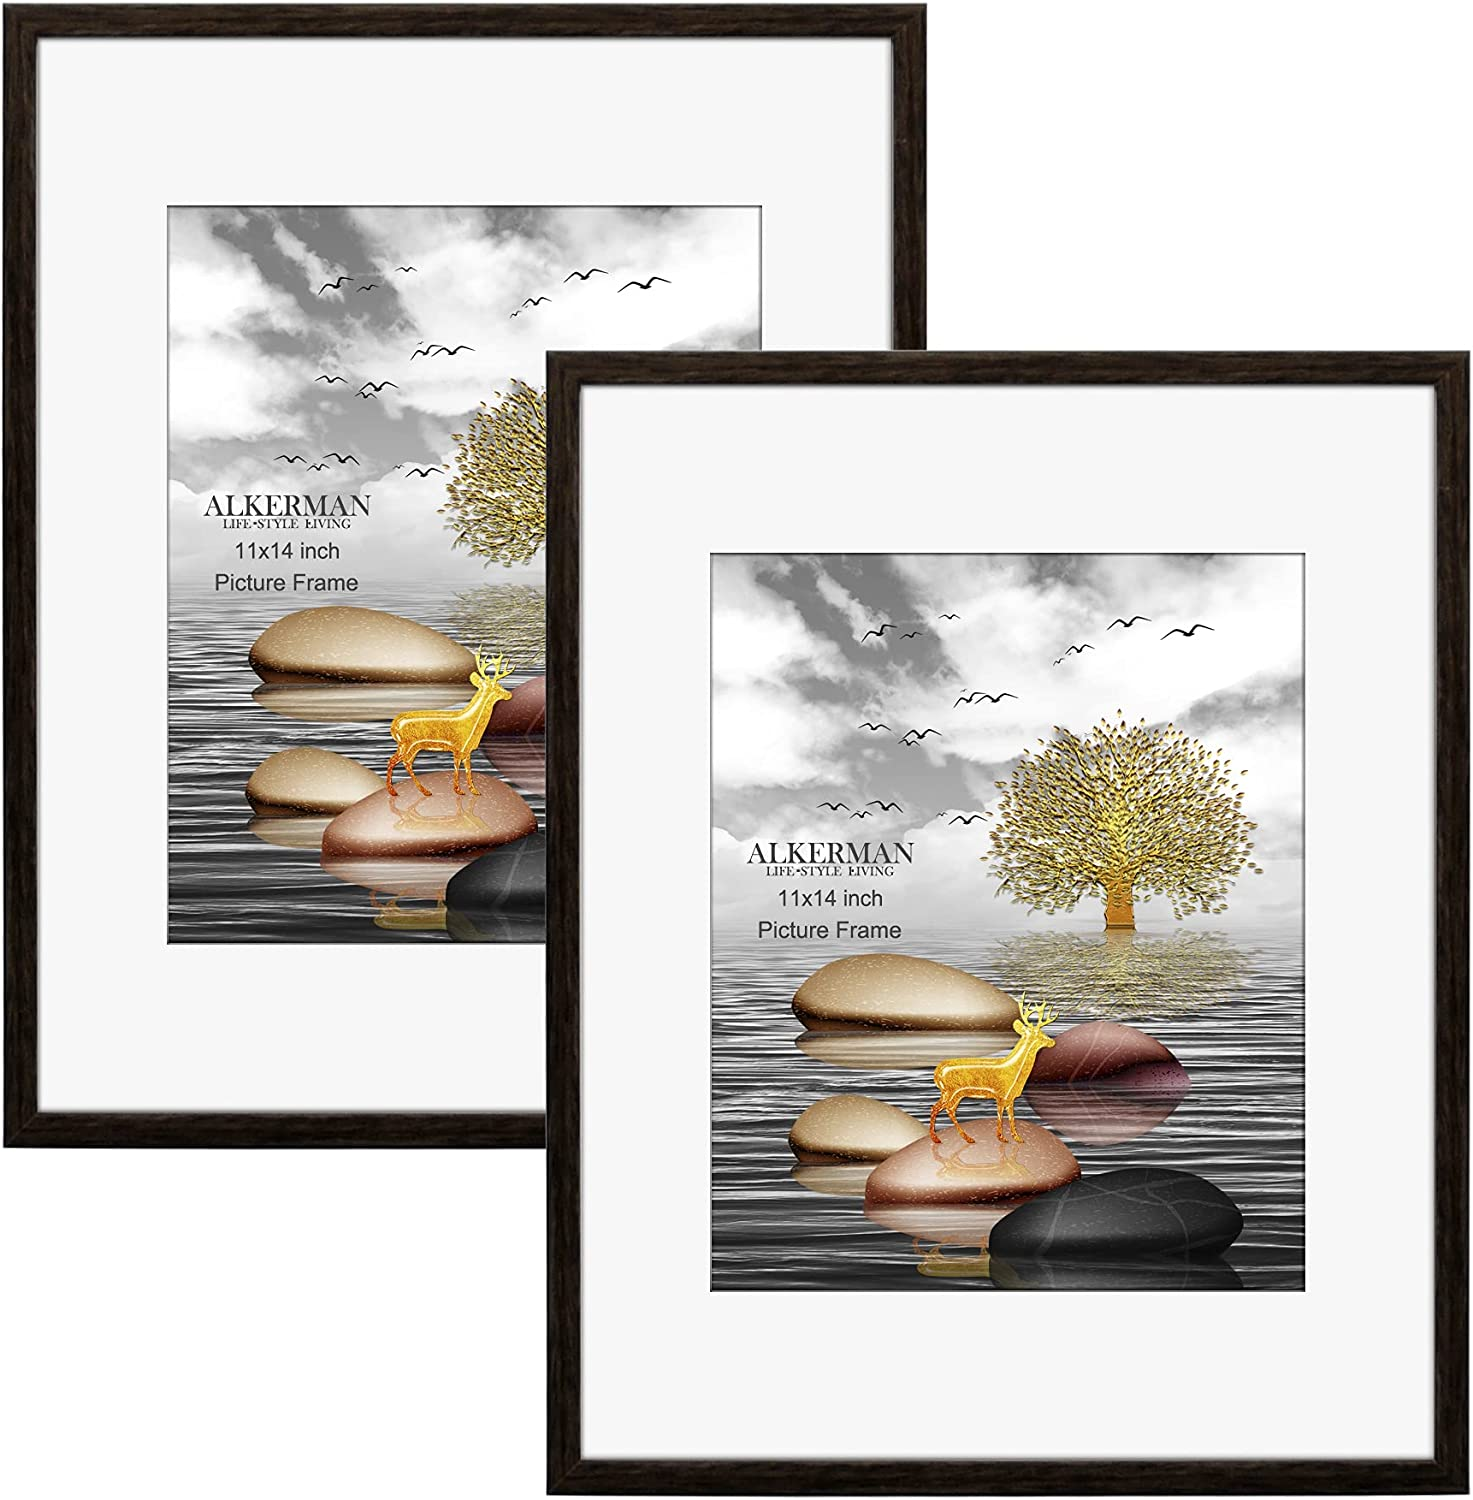 Sales of SALE items from new works Alkerman 11x14 Picture Frames (pack Popular brand in the world Display 2) of Pict